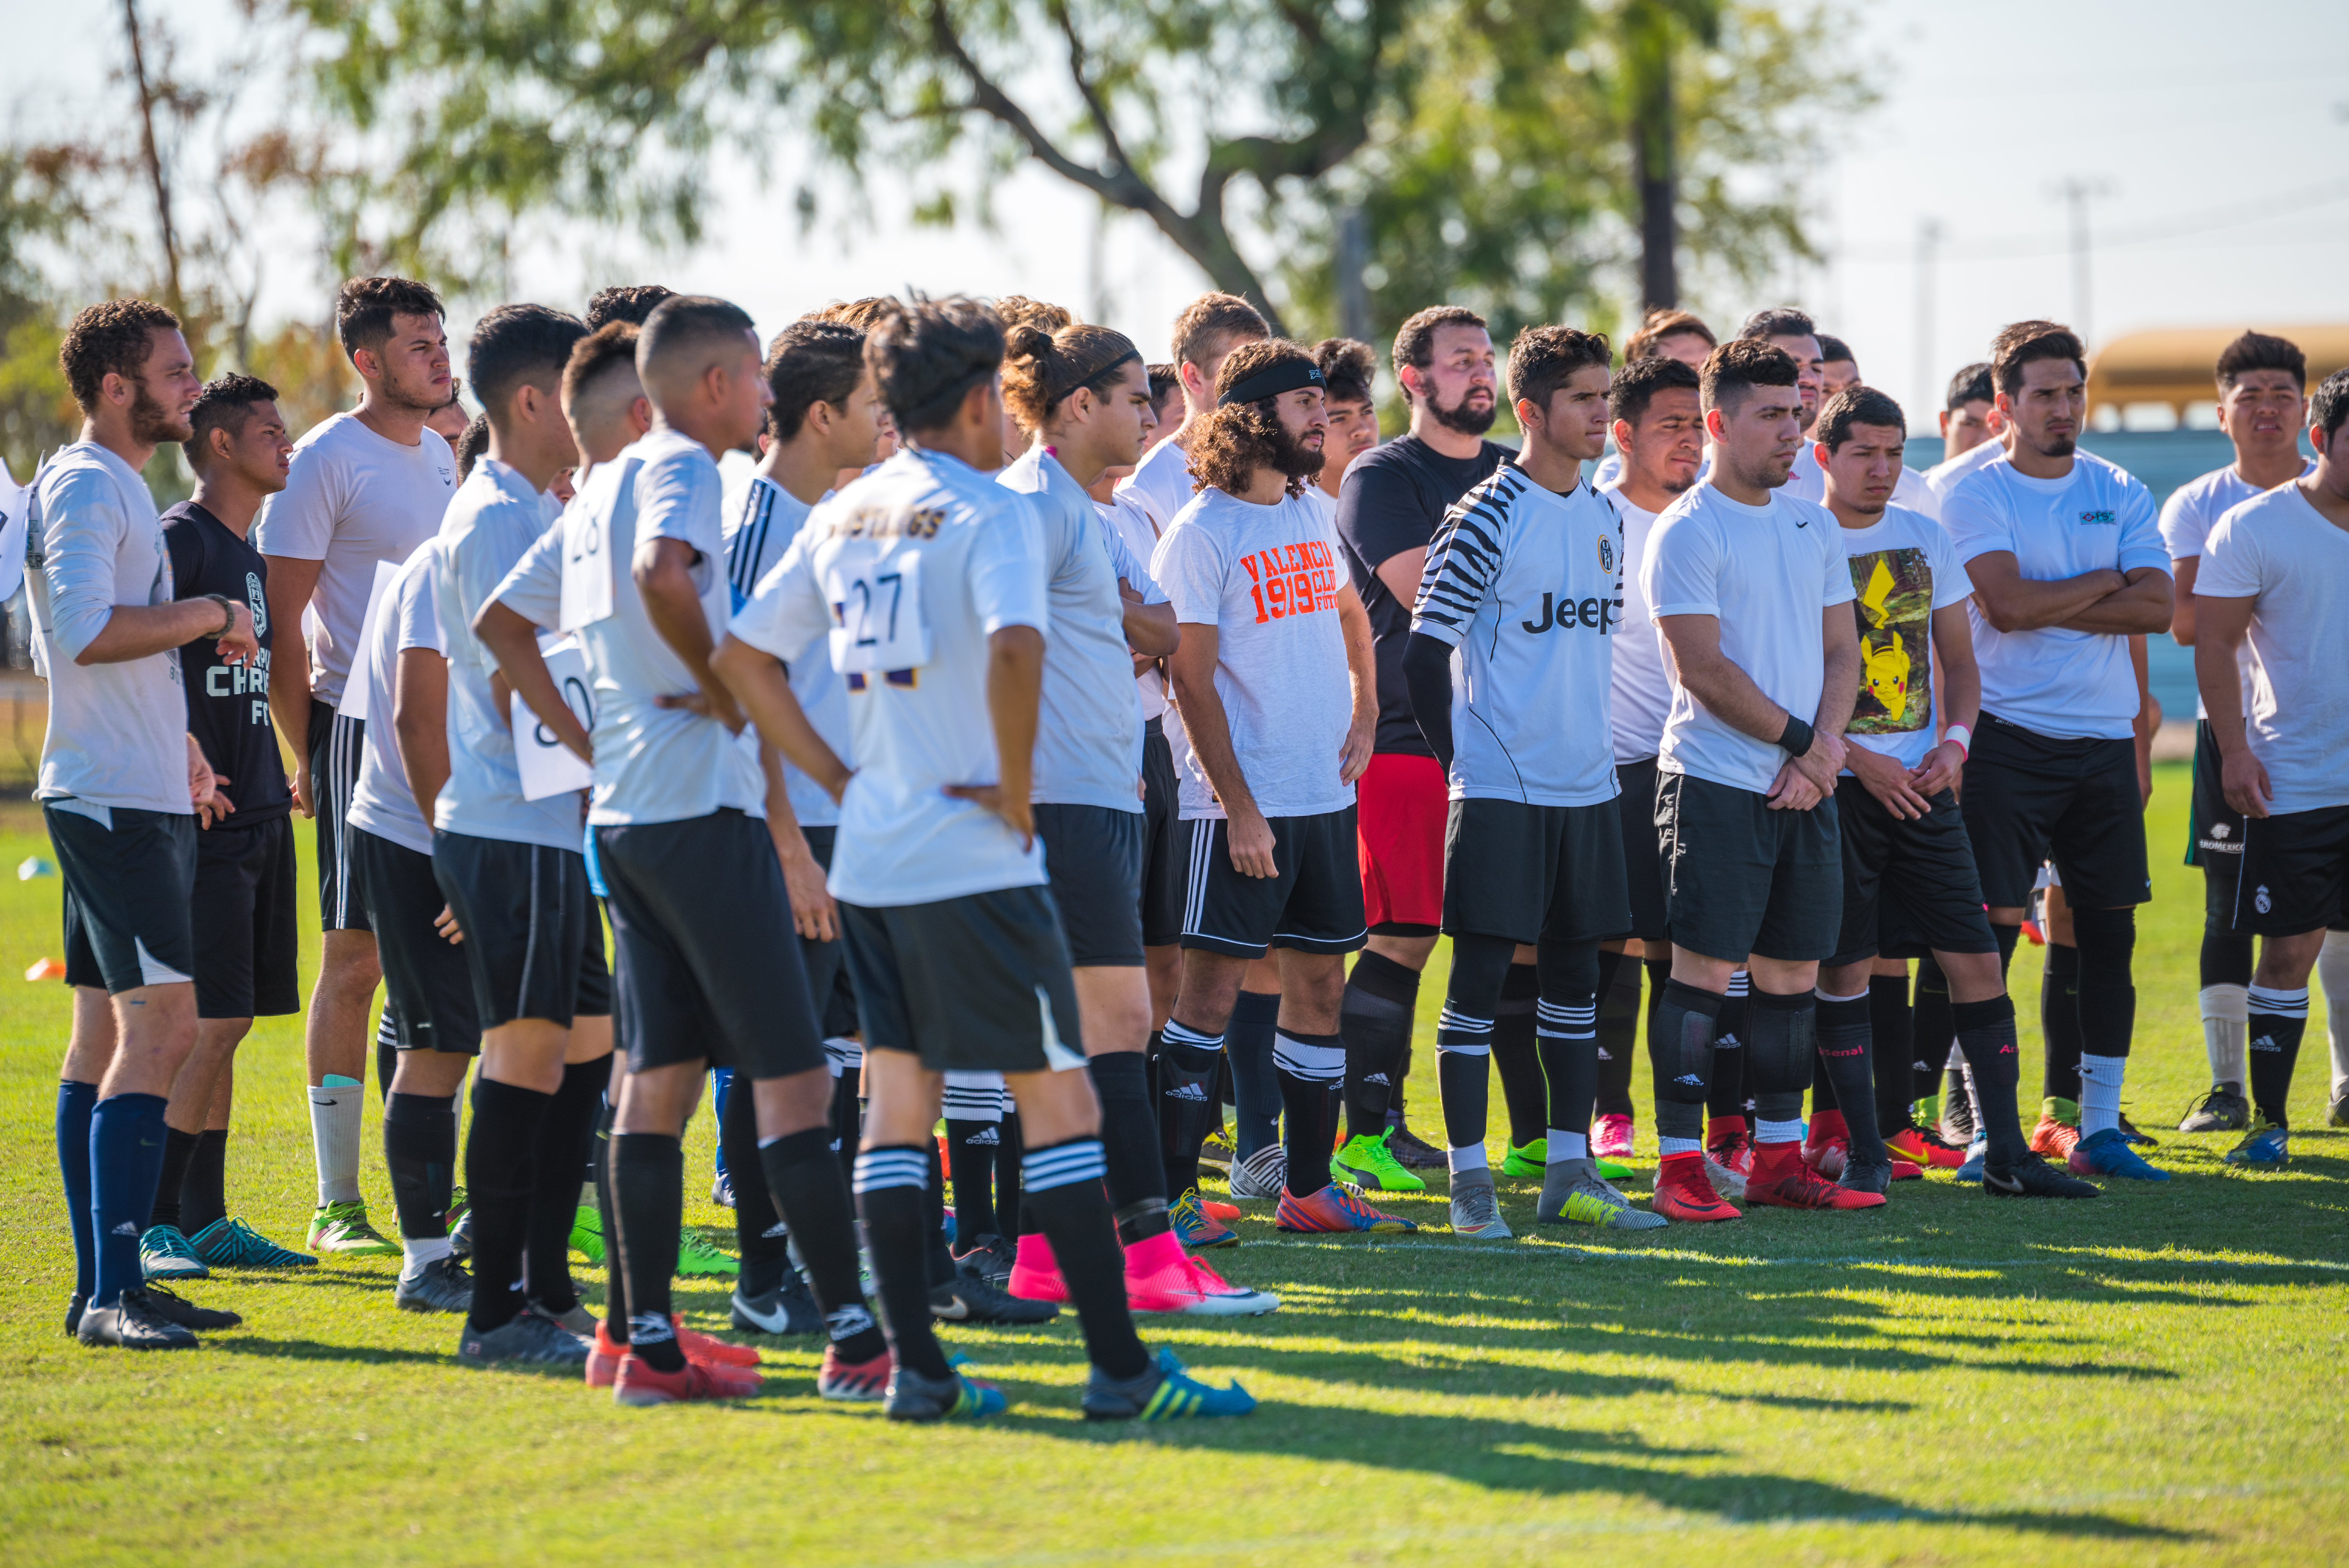 CORPUS CHRISTI FC ANNOUNCES 2 OPEN TRYOUT DATES FOR ITS 2019 SEASON